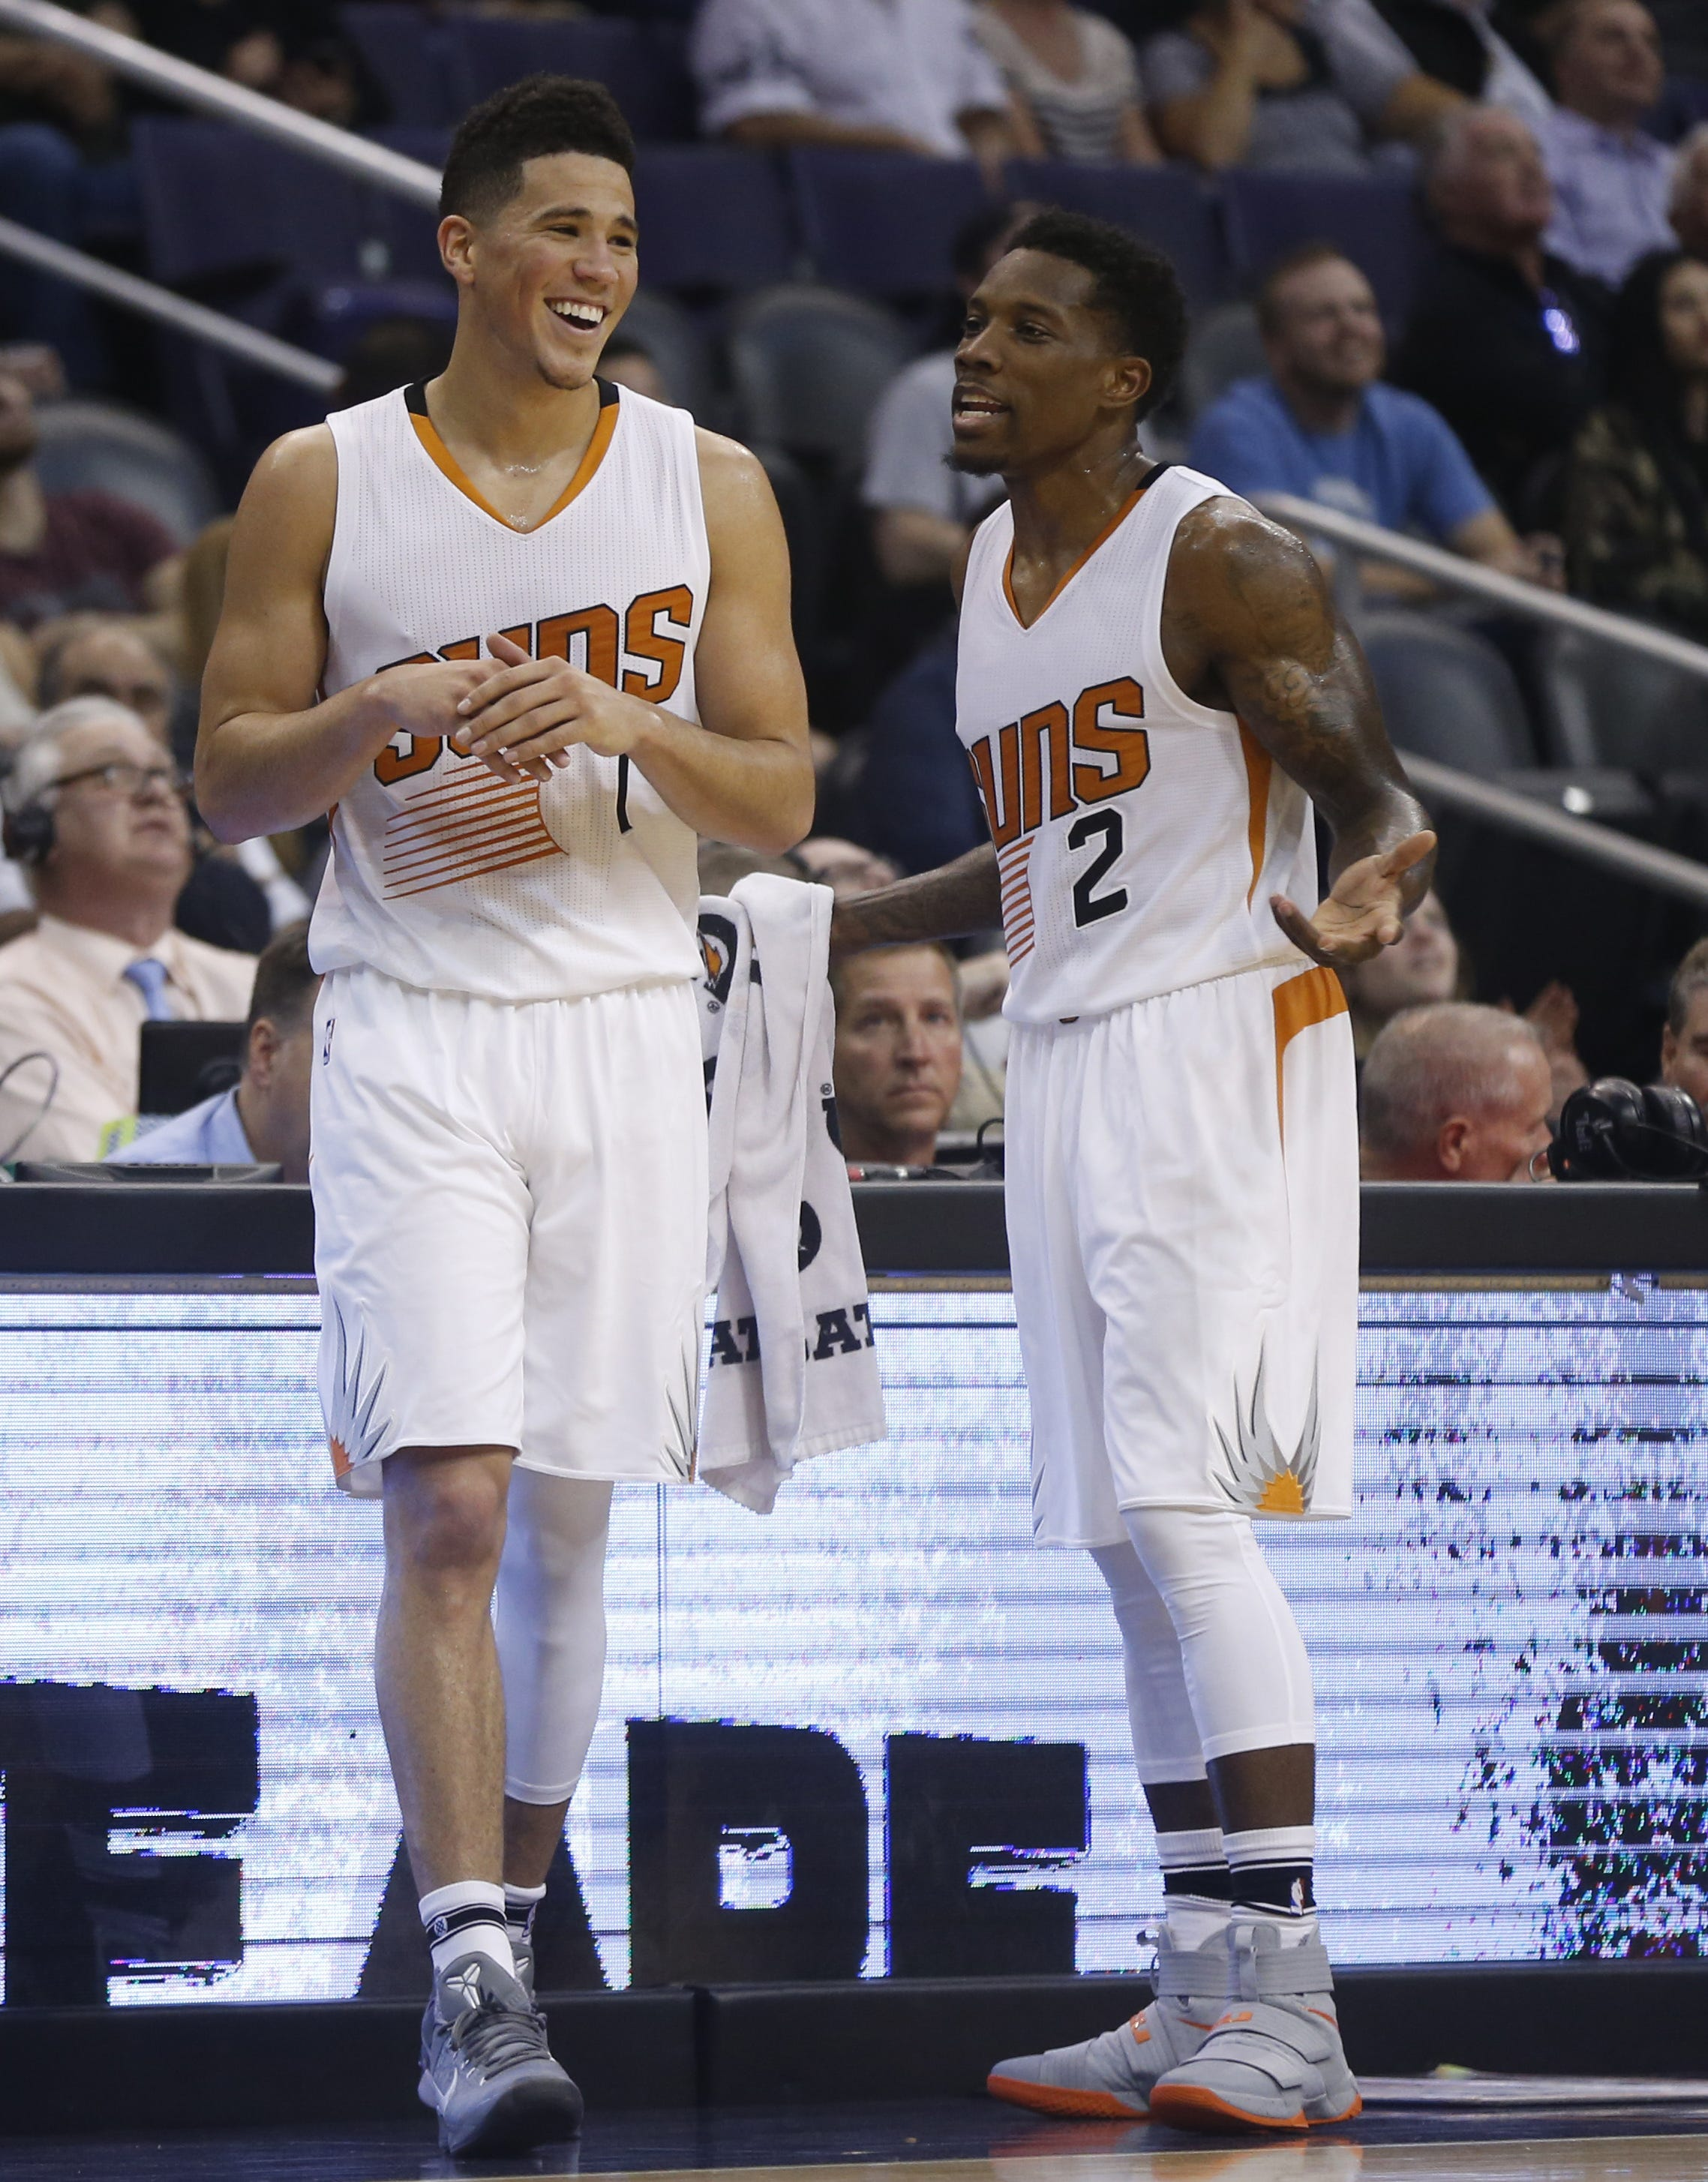 Will Devin Booker, Eric Bledsoe carry Suns to playoffs?